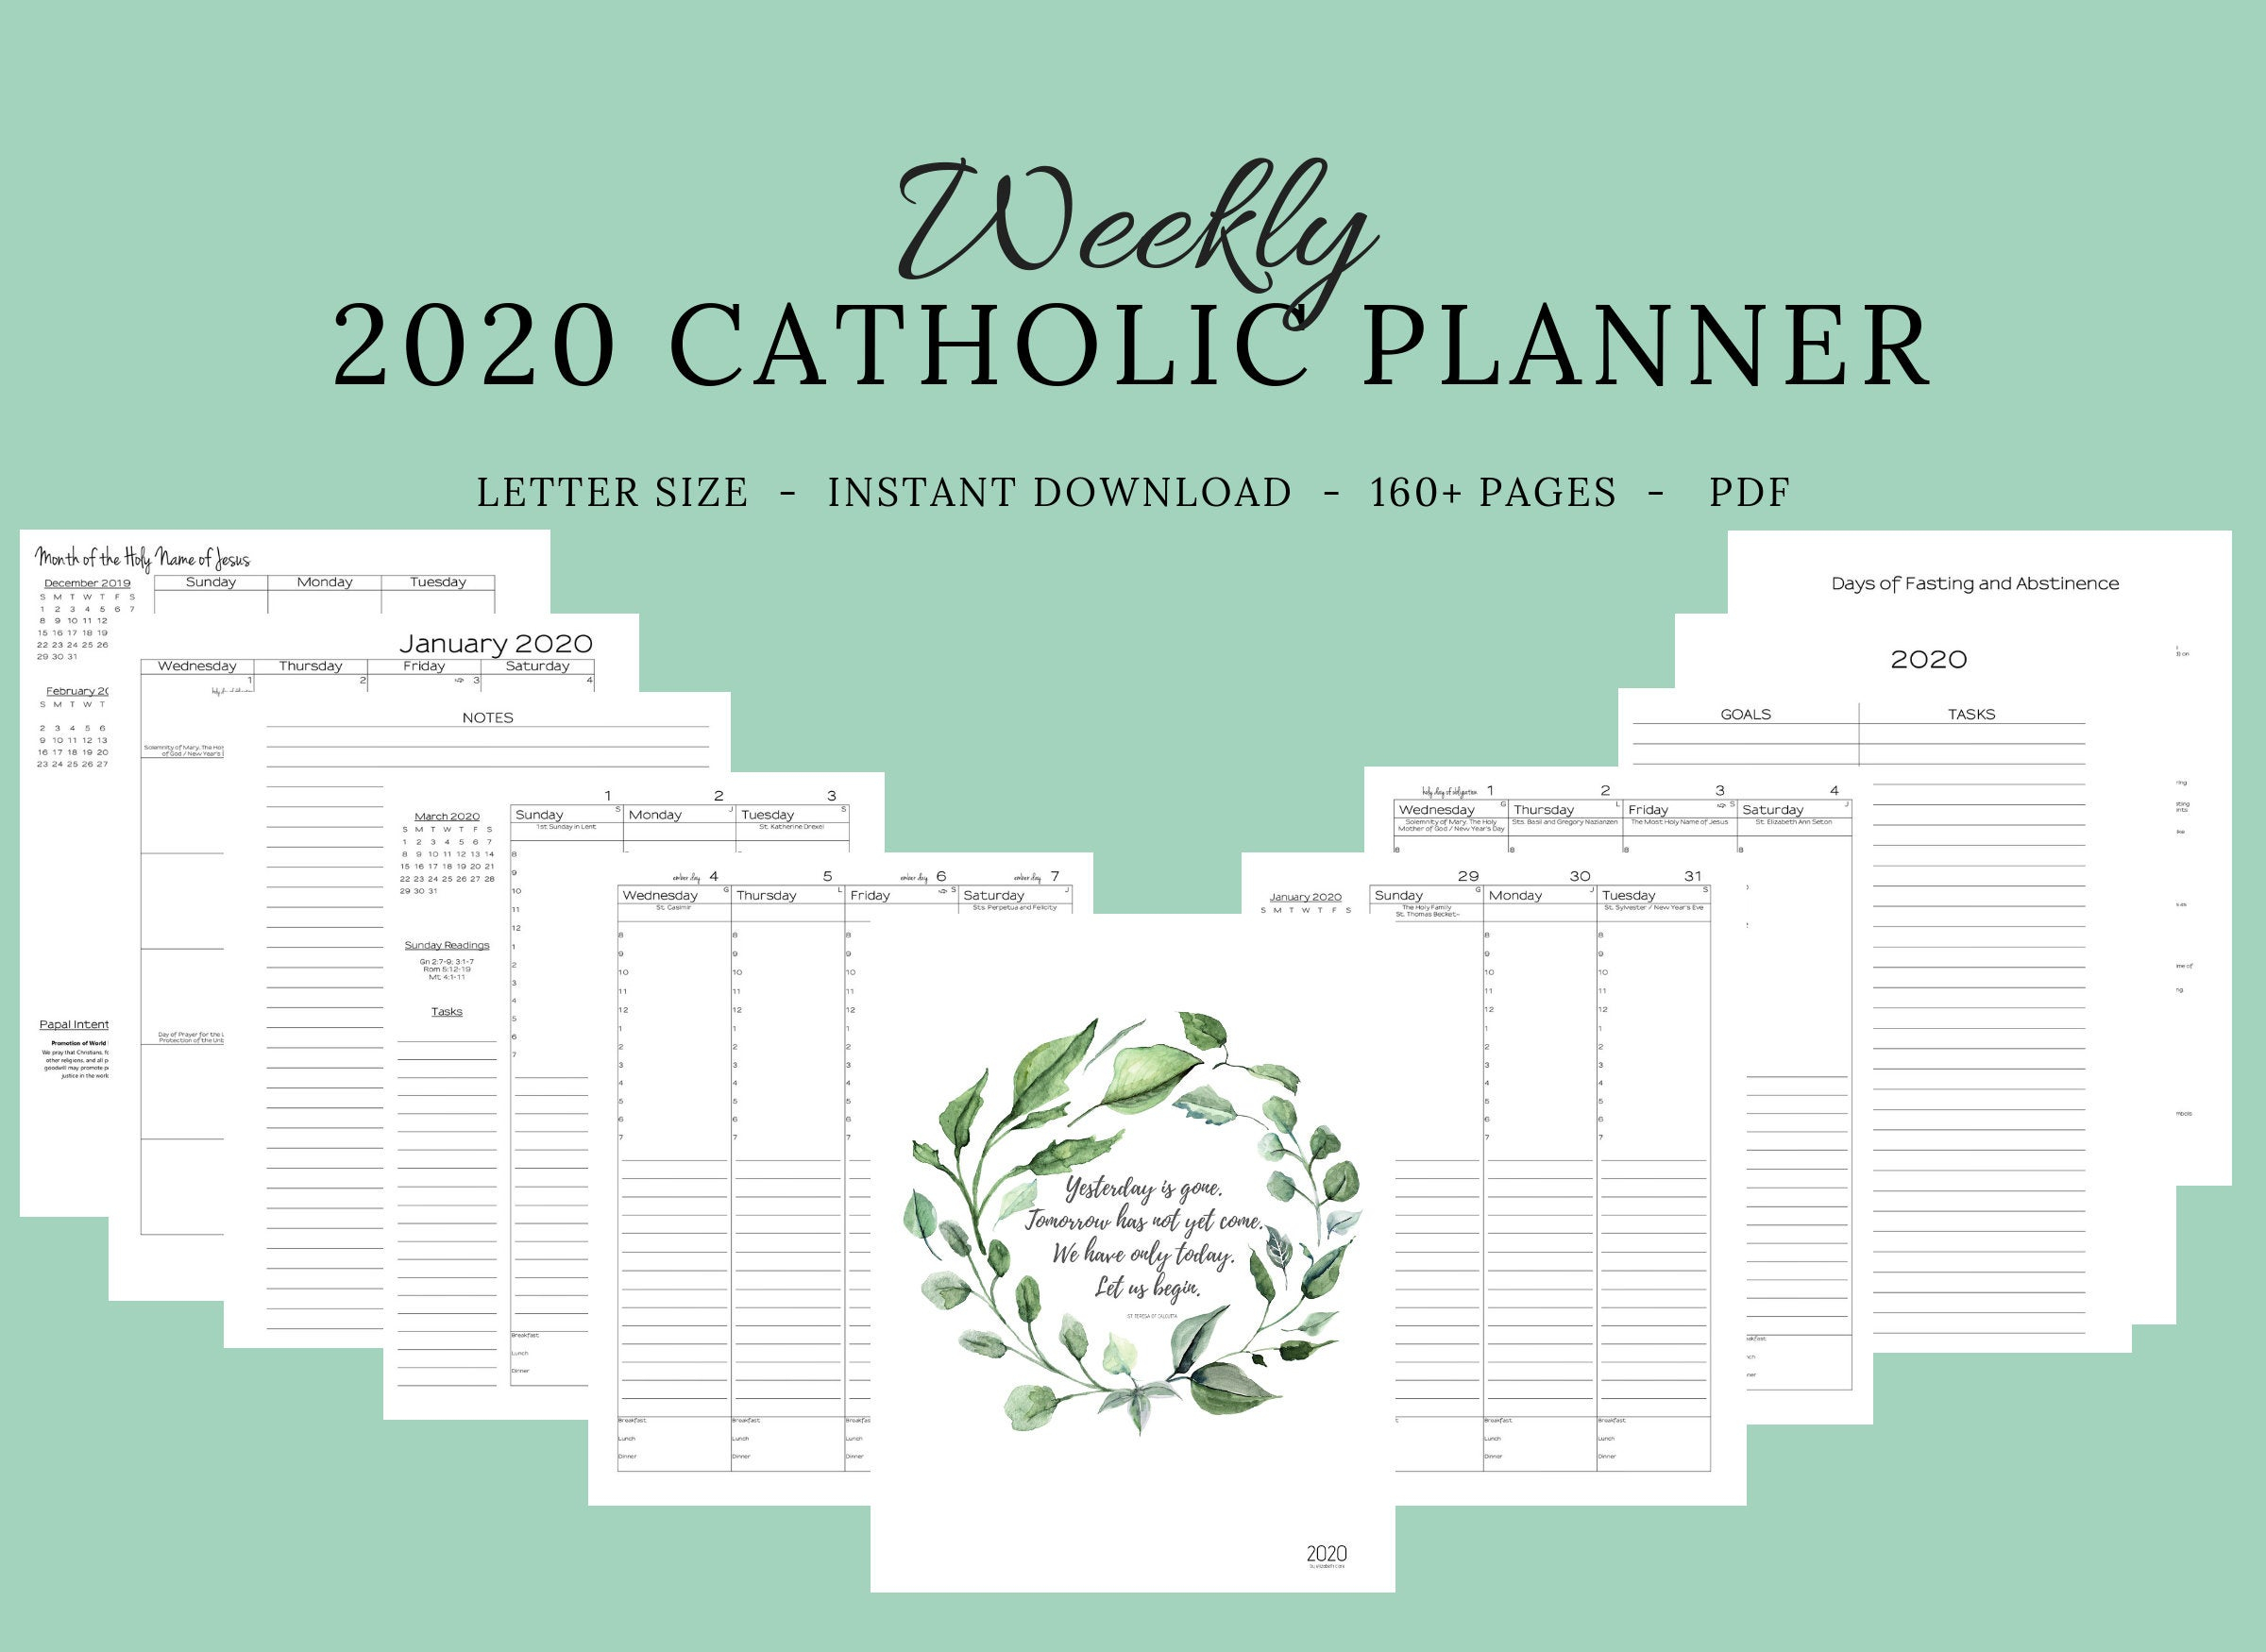 2020 Catholic Planner Weekly Printable: Daily Planner / Weekly Calendar /  Catholic Liturgical Year Calendar / Printable Catholic Planner in Printable Monthly Liiturgical Calendar 2020